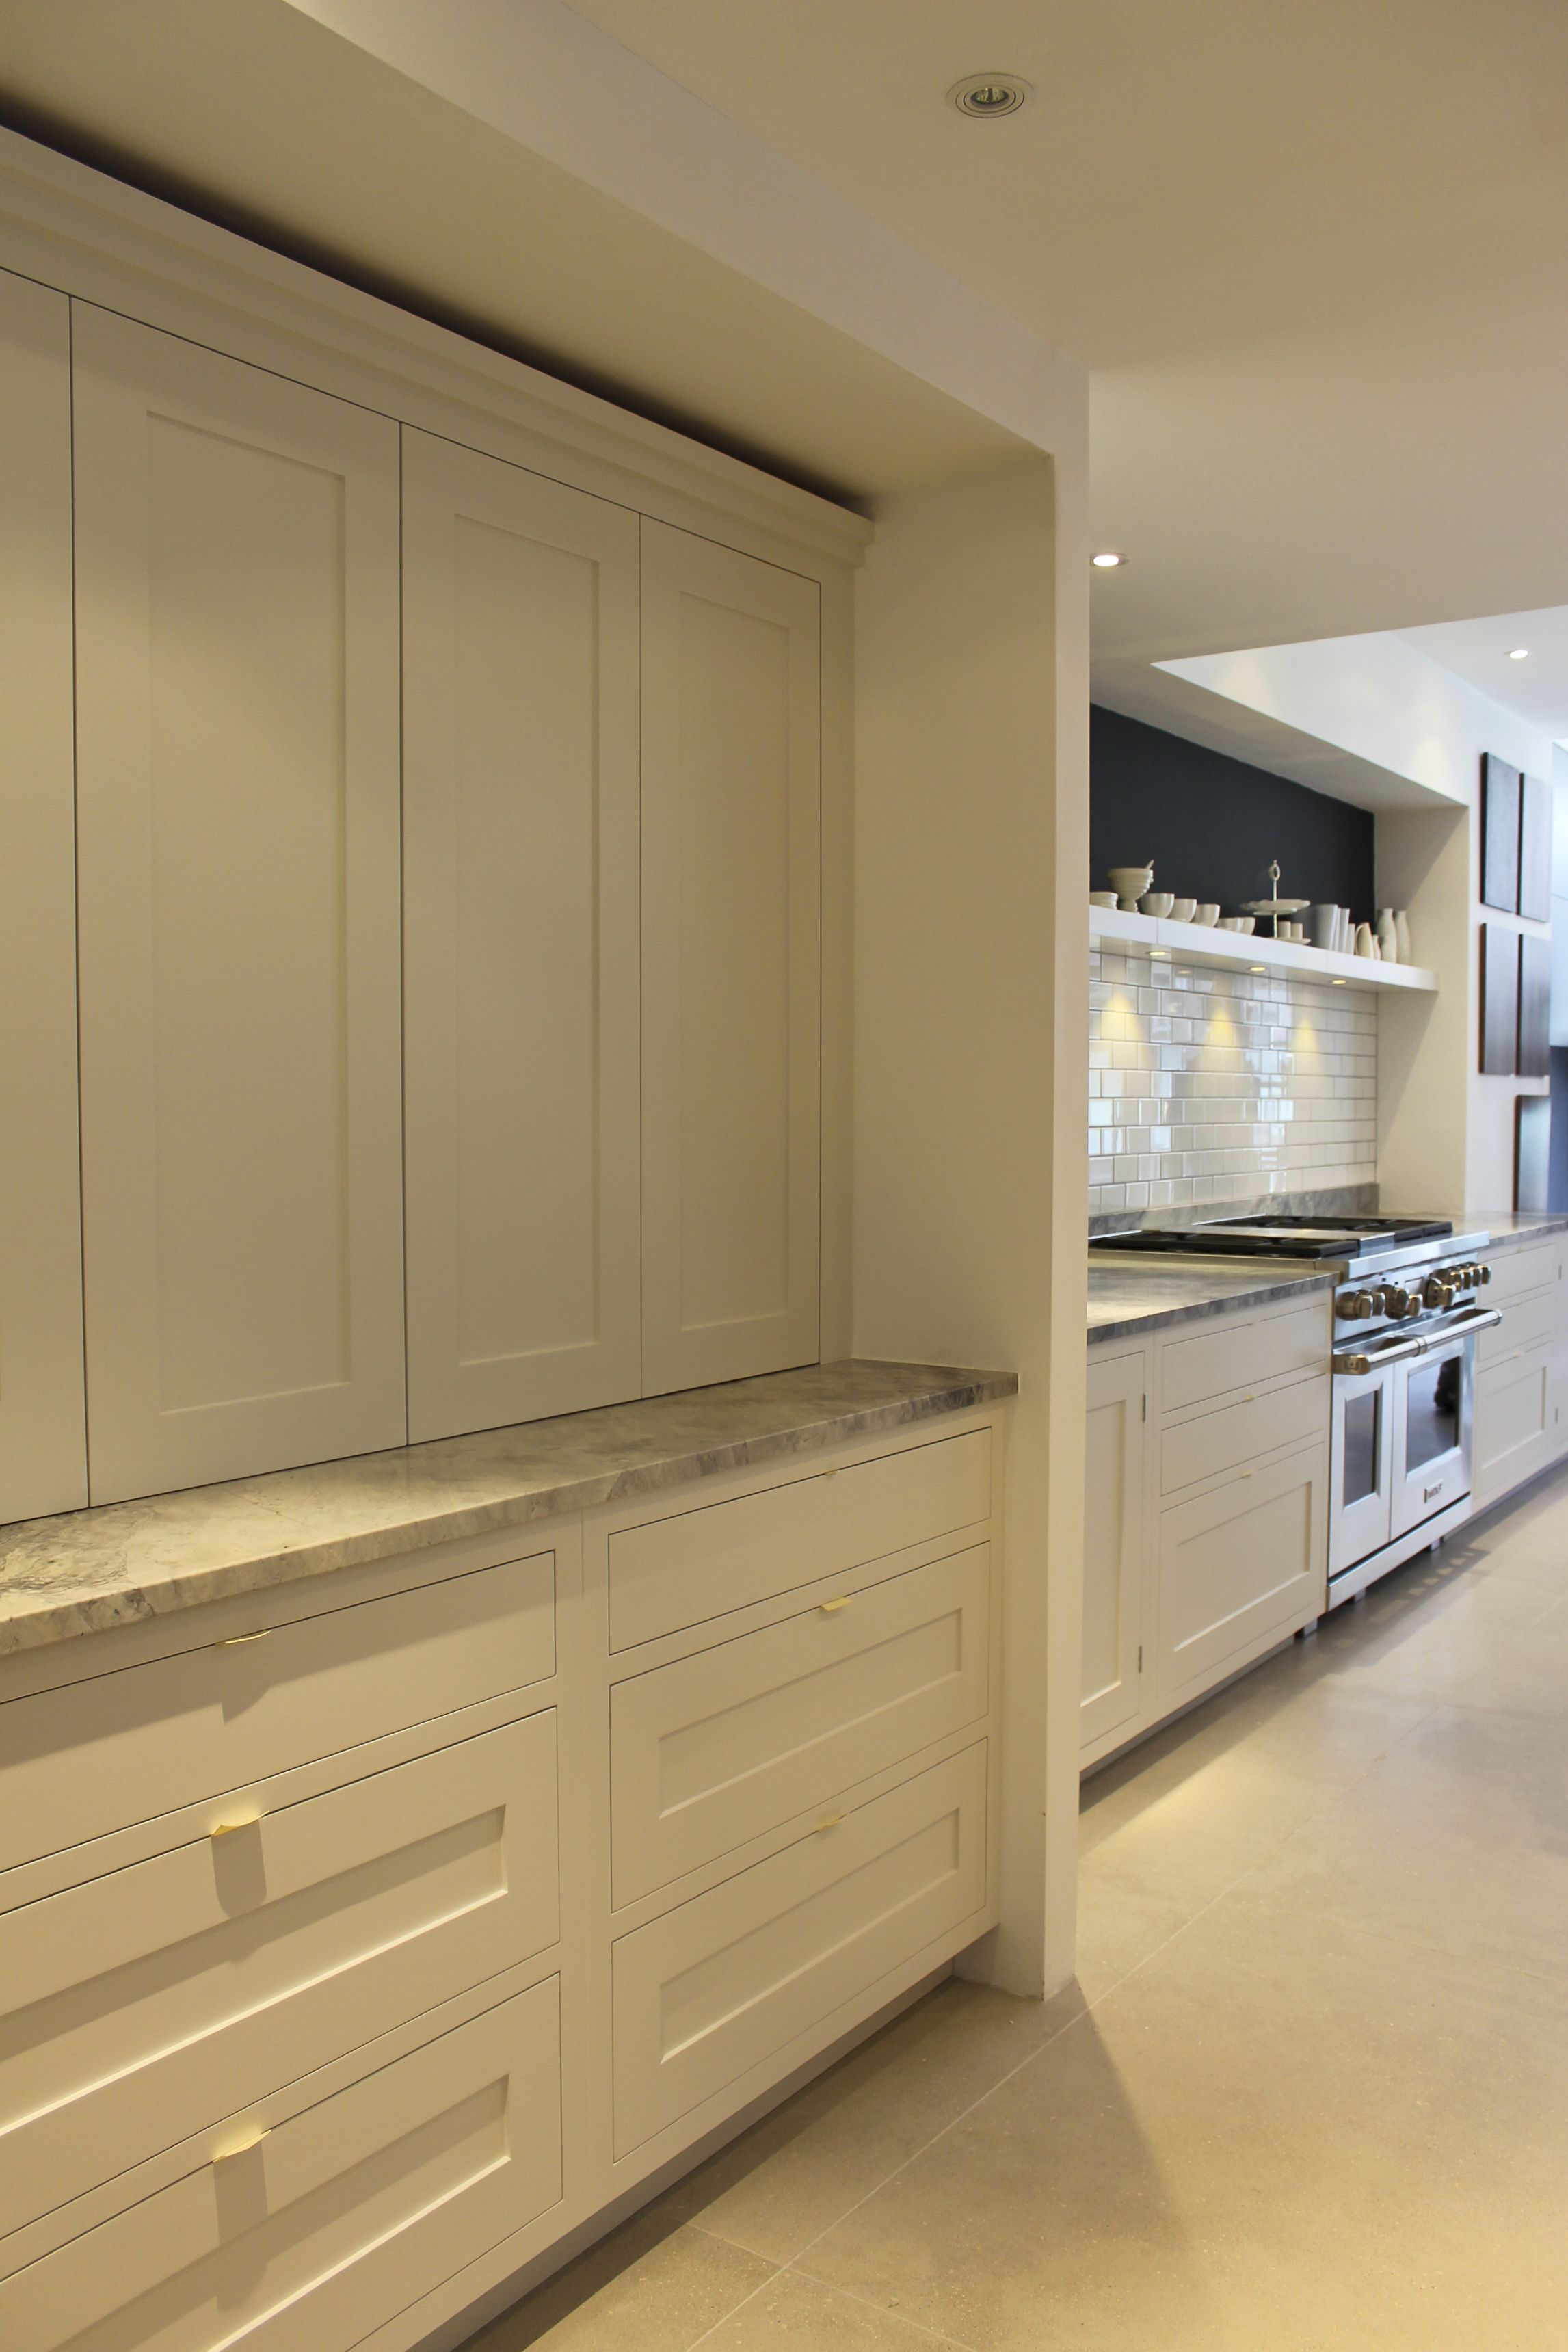 Roundhouse Bespoke Kitchen In Fulham Showroom Transitional